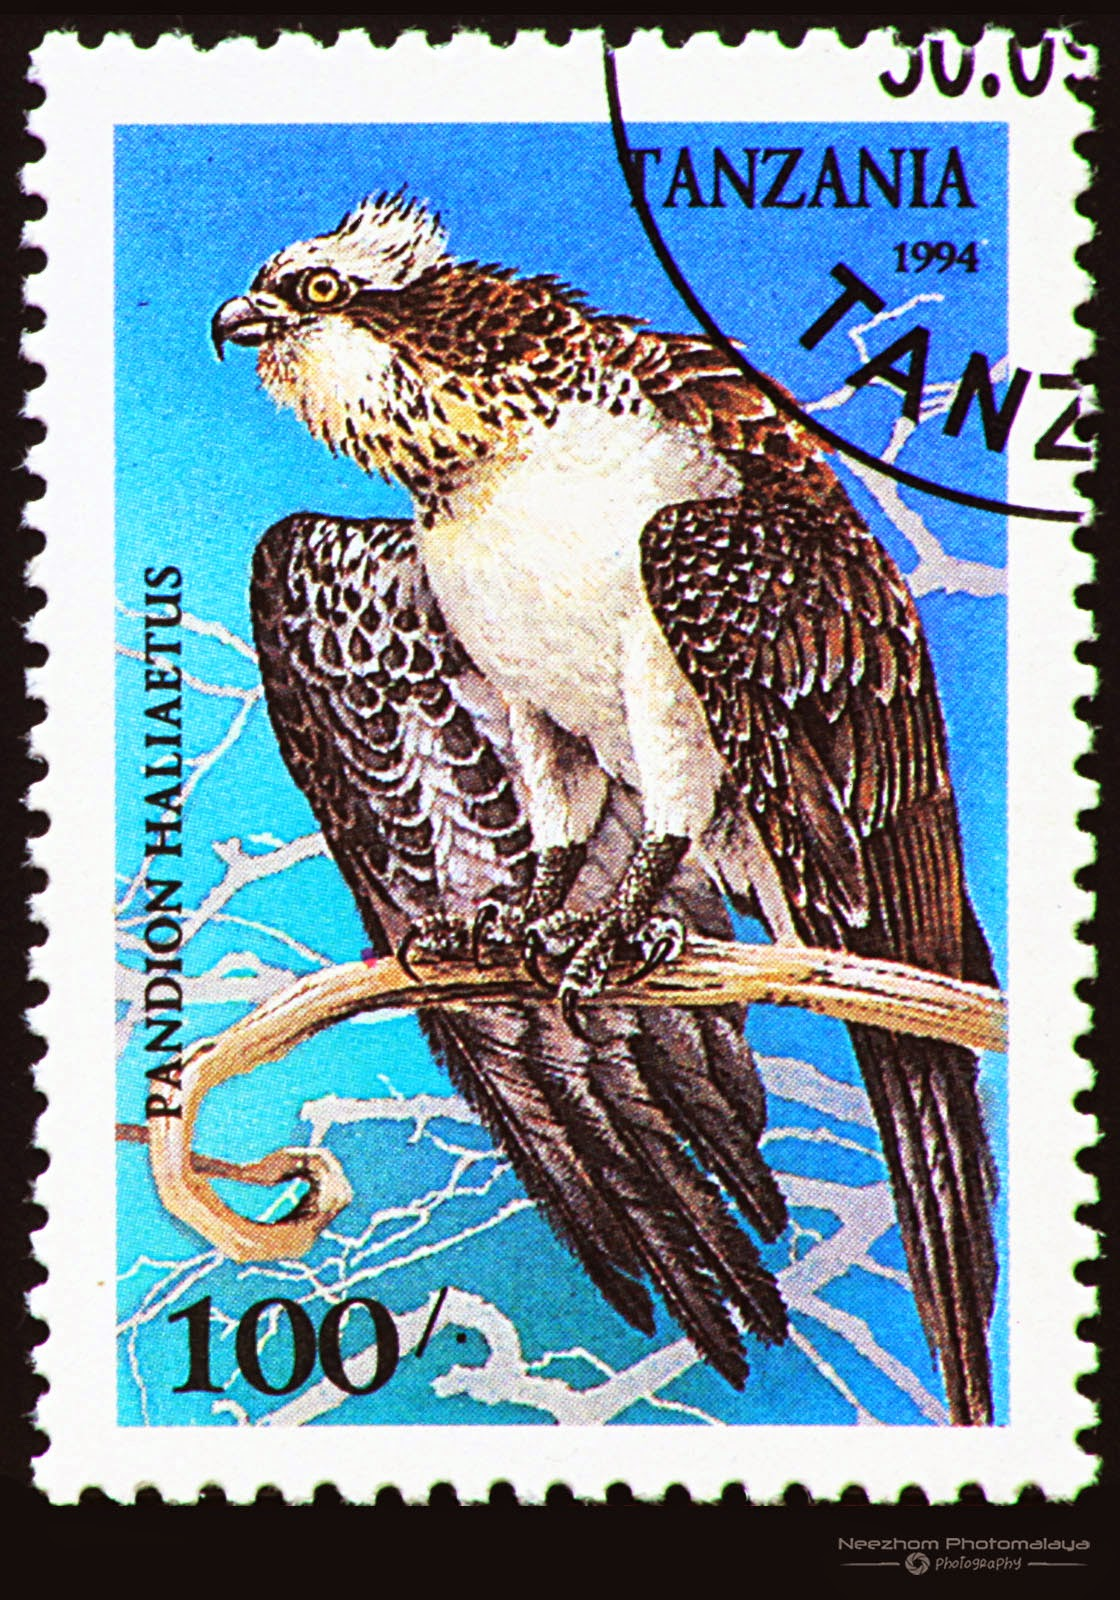 Tanzania 1994 Birds of Prey stamp - Western Osprey (Pandion haliaetus) 100 s